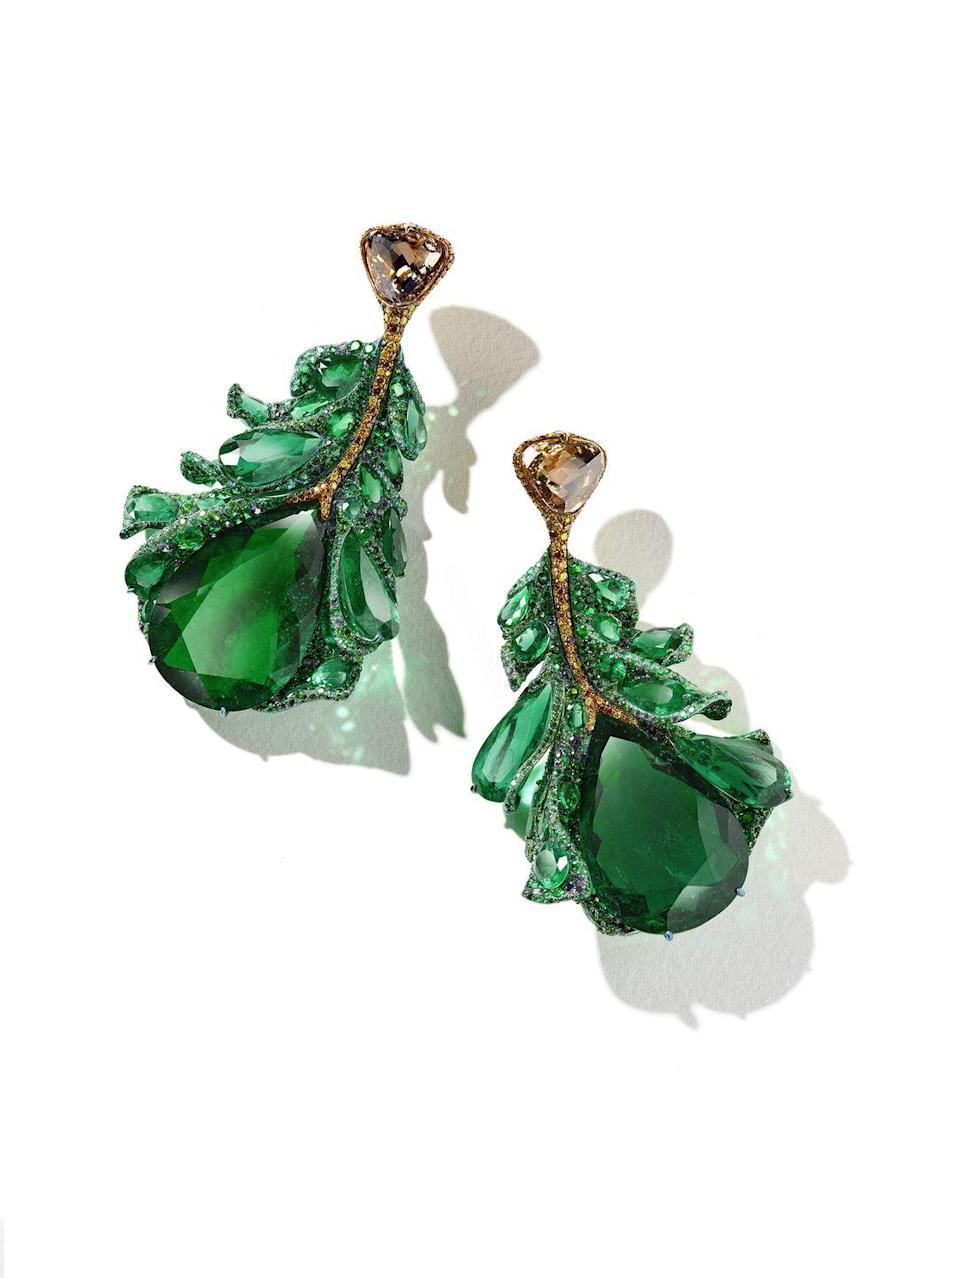 """<p>Jewelry artist <a href=""""http://cindychao.com/"""" rel=""""nofollow noopener"""" target=""""_blank"""" data-ylk=""""slk:Cindy Chao"""" class=""""link rapid-noclick-resp"""">Cindy Chao</a> held on to a pair of exceptional 90-carat pear-shaped vivid green Colombian emeralds for over a decade, waiting for inspiration. This year, it finally came. She set the stones in the Green Plumule earrings and unveiled them during couture week. Each stone is surrounded by tsavorites, alexandrites, and color-changing garnets. Even with 2,291 stones, the earrings retain graceful flexibility and lightness. Another pair of rare conch pearls are featured in the Cameron Falls earrings, which are set in titanium with streams of pink sapphires, purple garnets, and rose-cut colorless and fancy colored diamonds.</p>"""